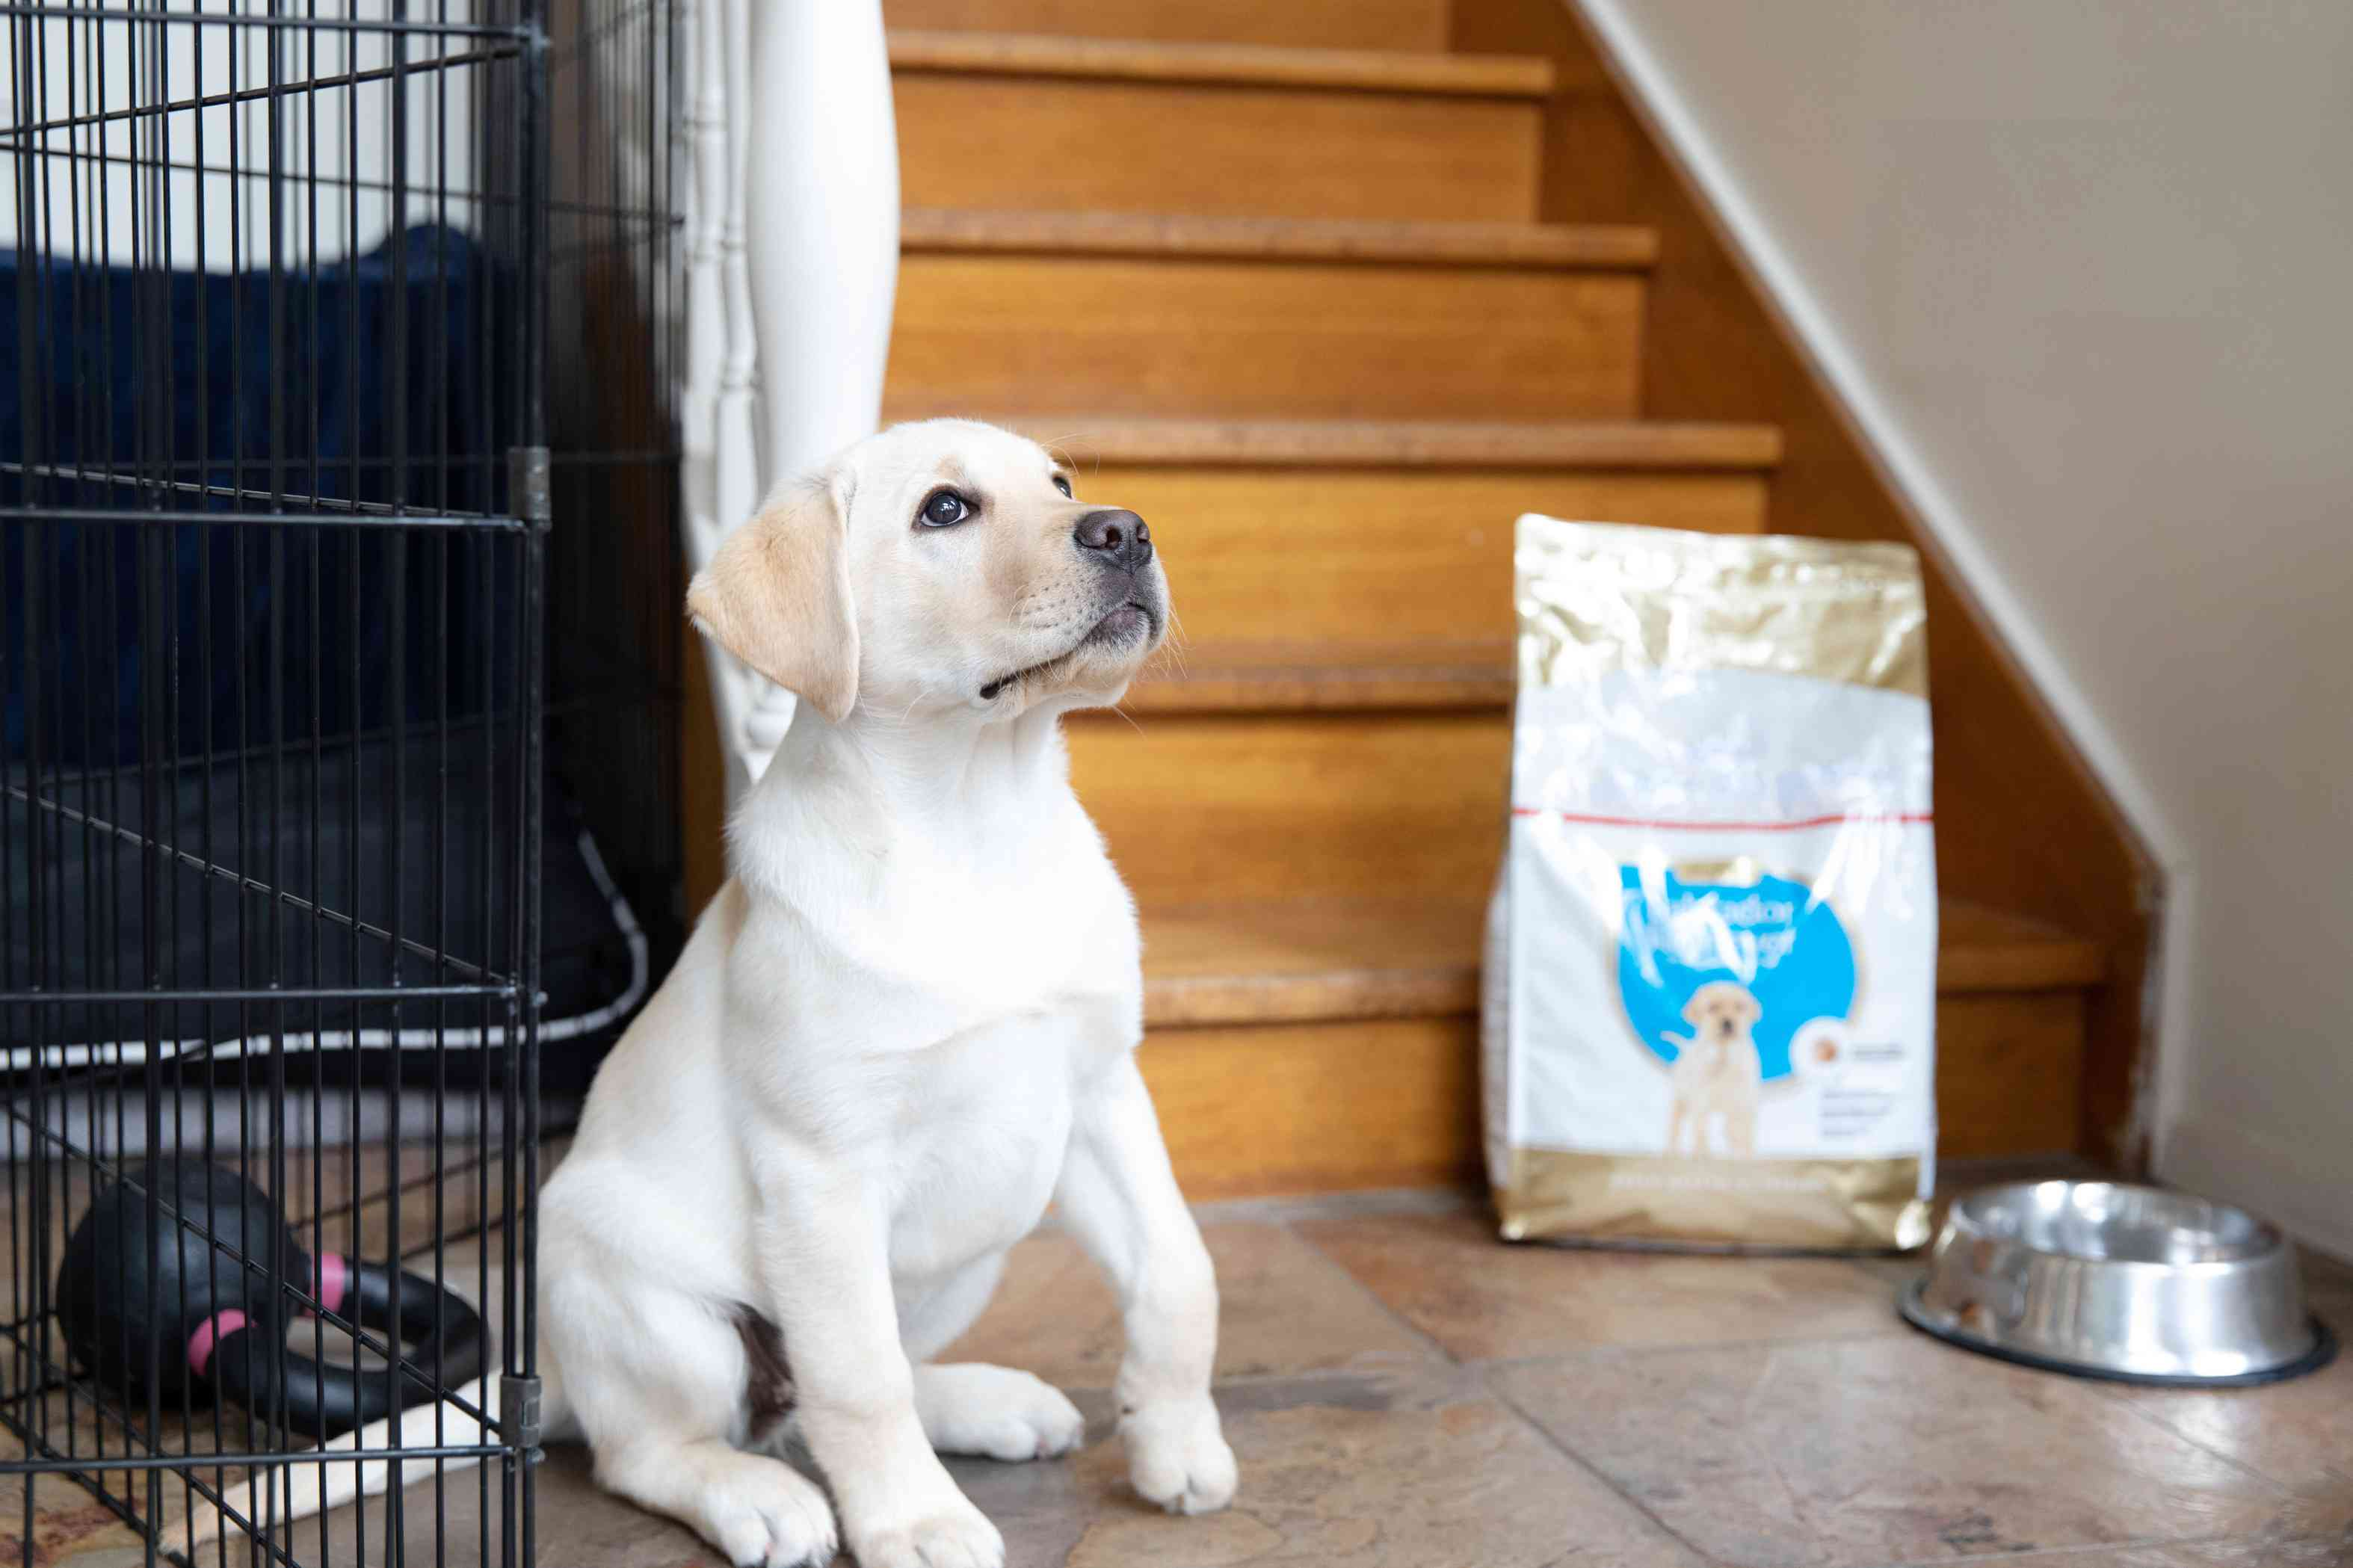 White labrador puppy sitting next to bag of puppy food and metal bowl